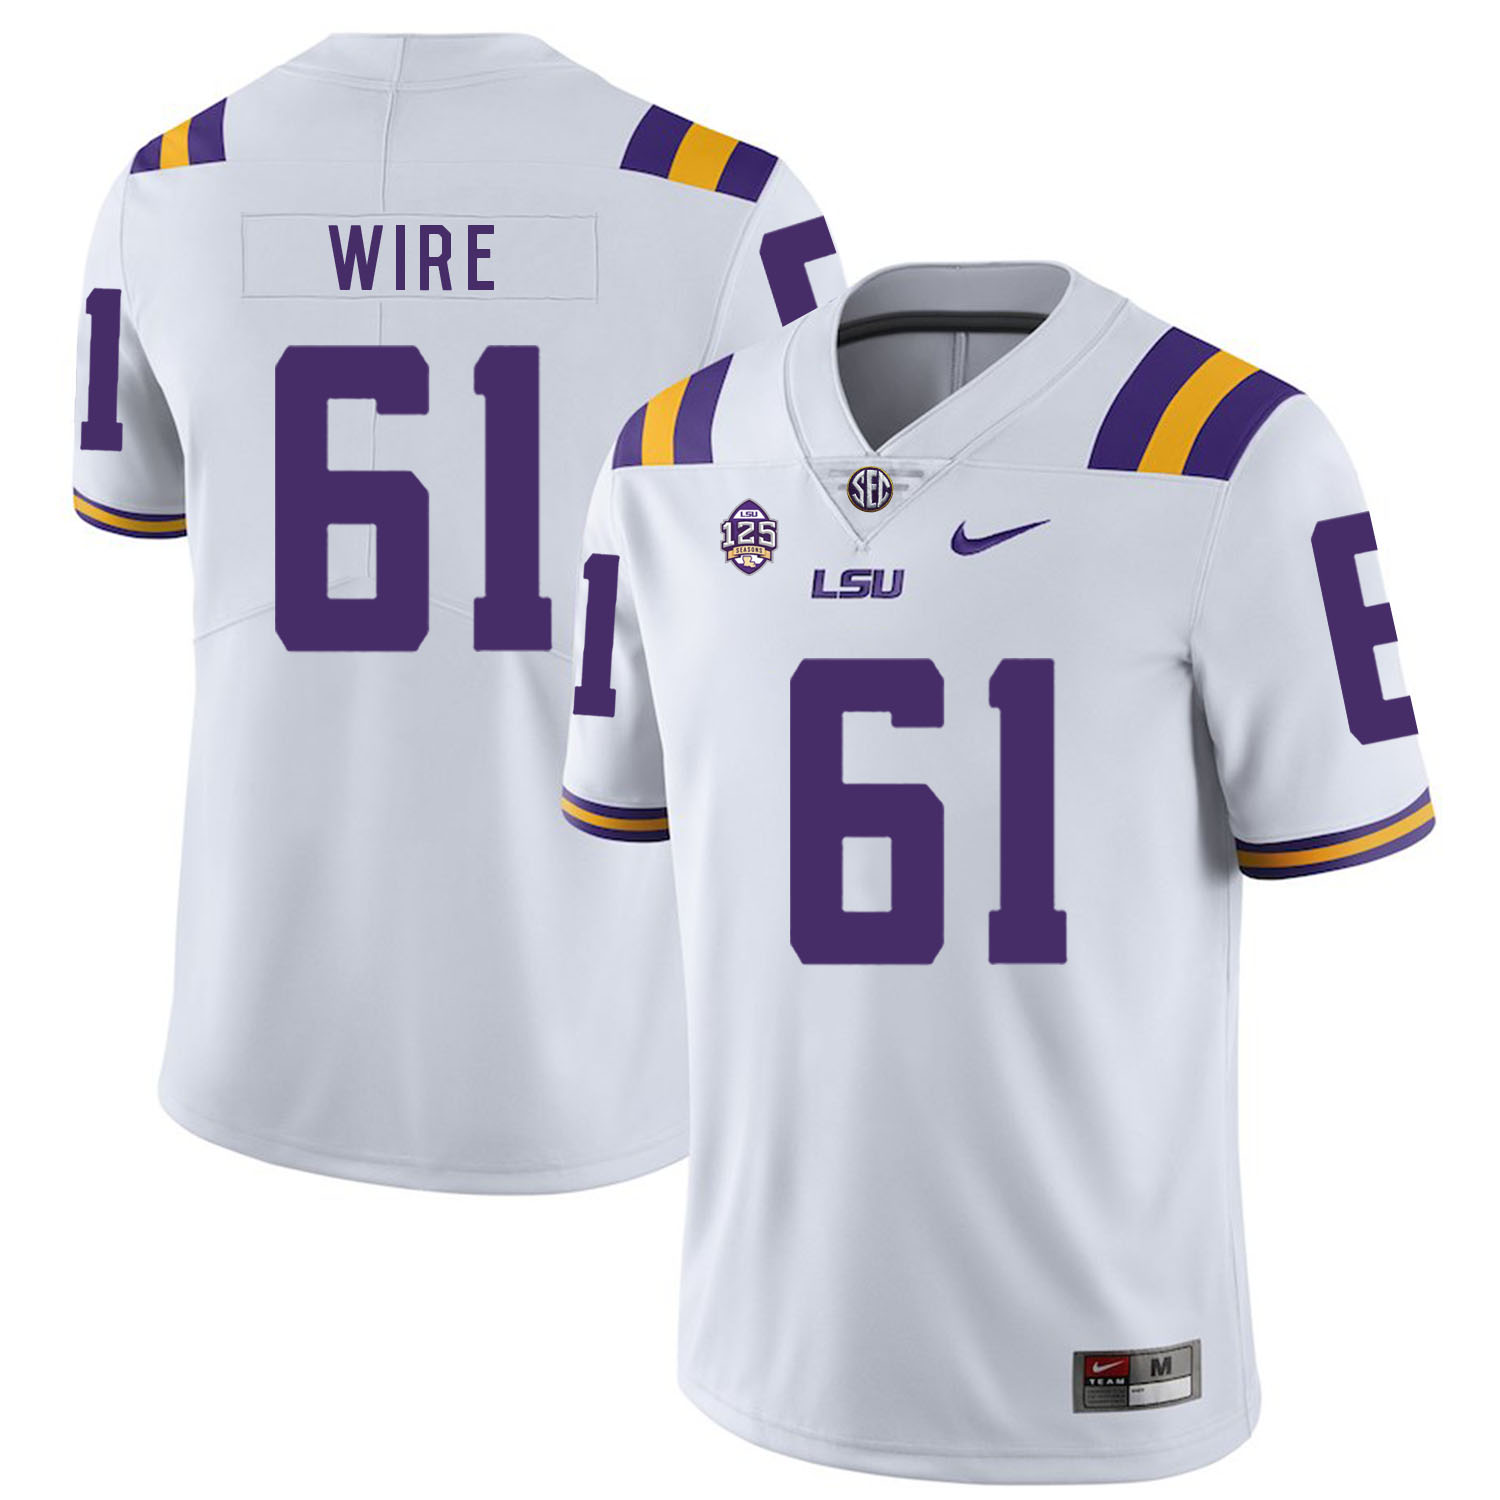 LSU Tigers 61 Cameron Wire White Nike College Football Jersey